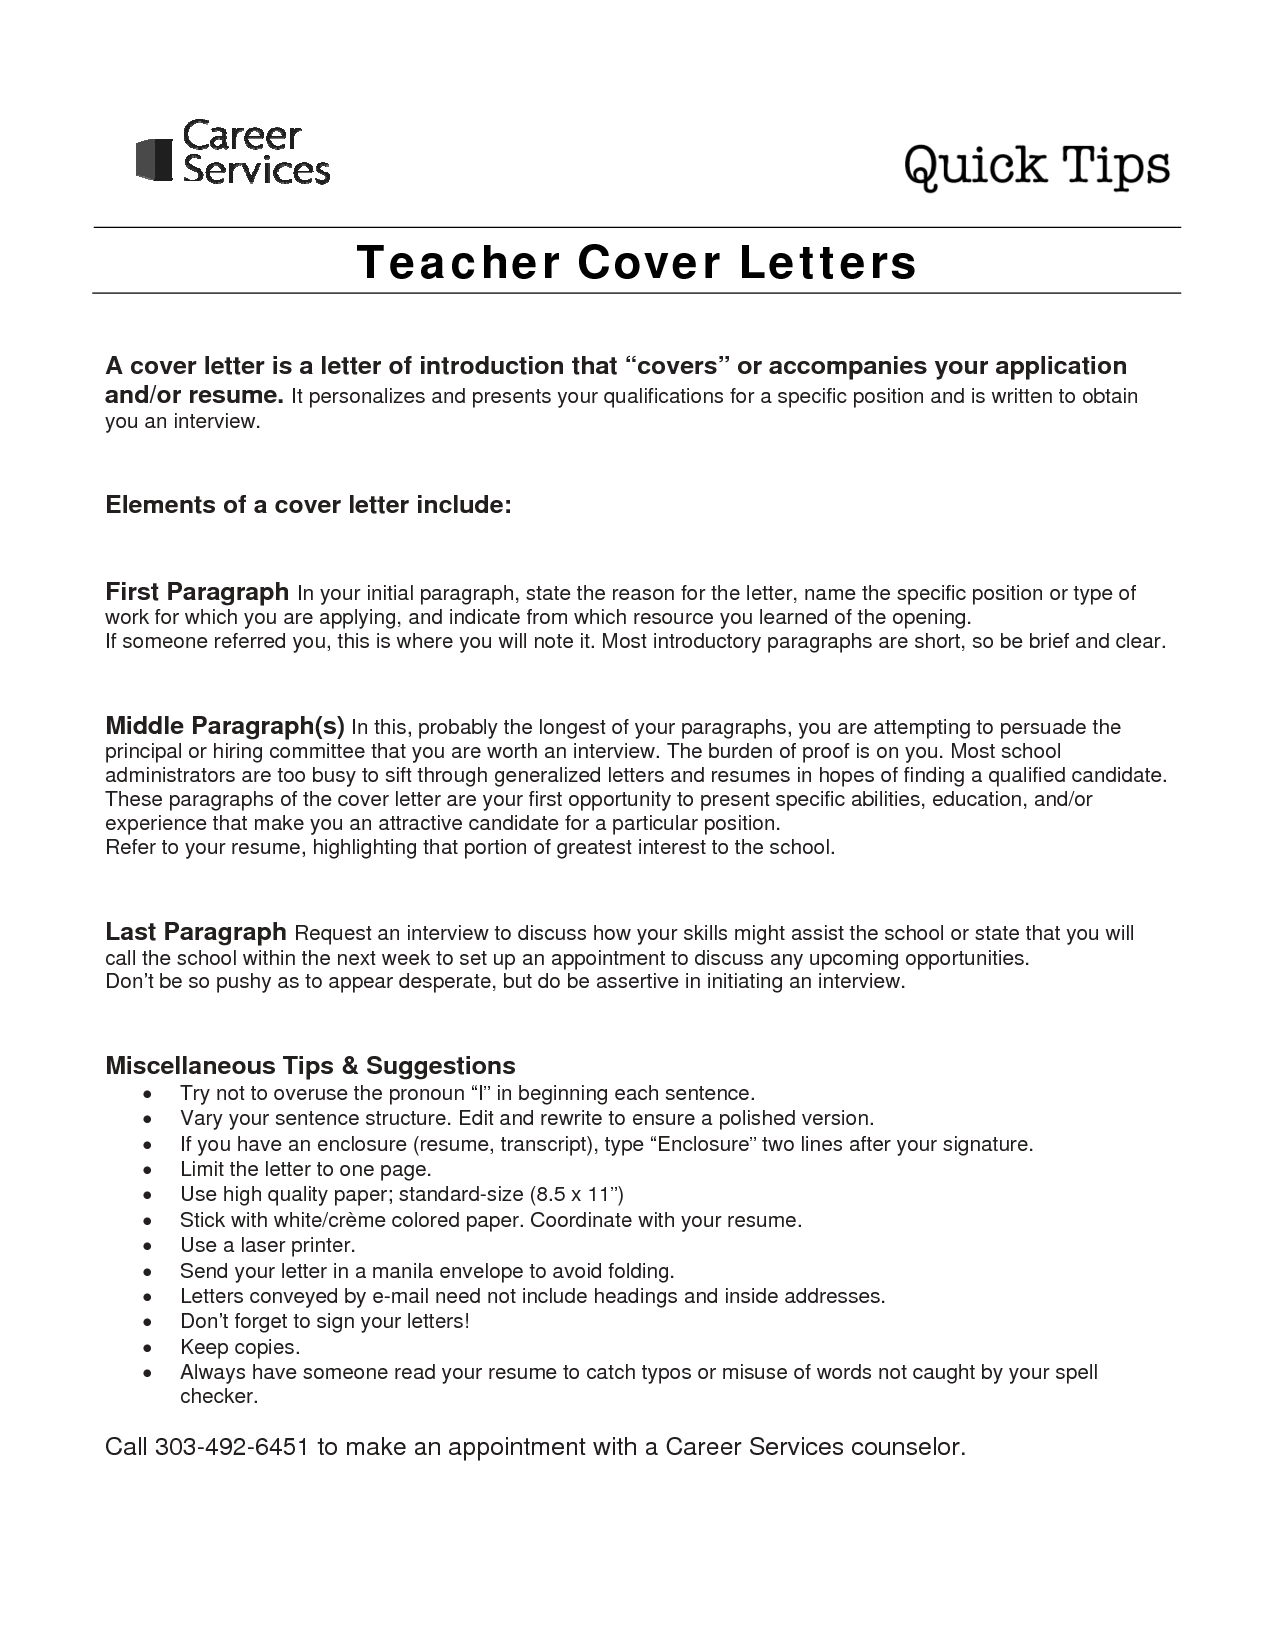 Cover letter so you leaves impression httpresumesdesign letter samples cover mistakes faq about builder teachers resume template for sample inside teaching best free home design idea inspiration madrichimfo Image collections